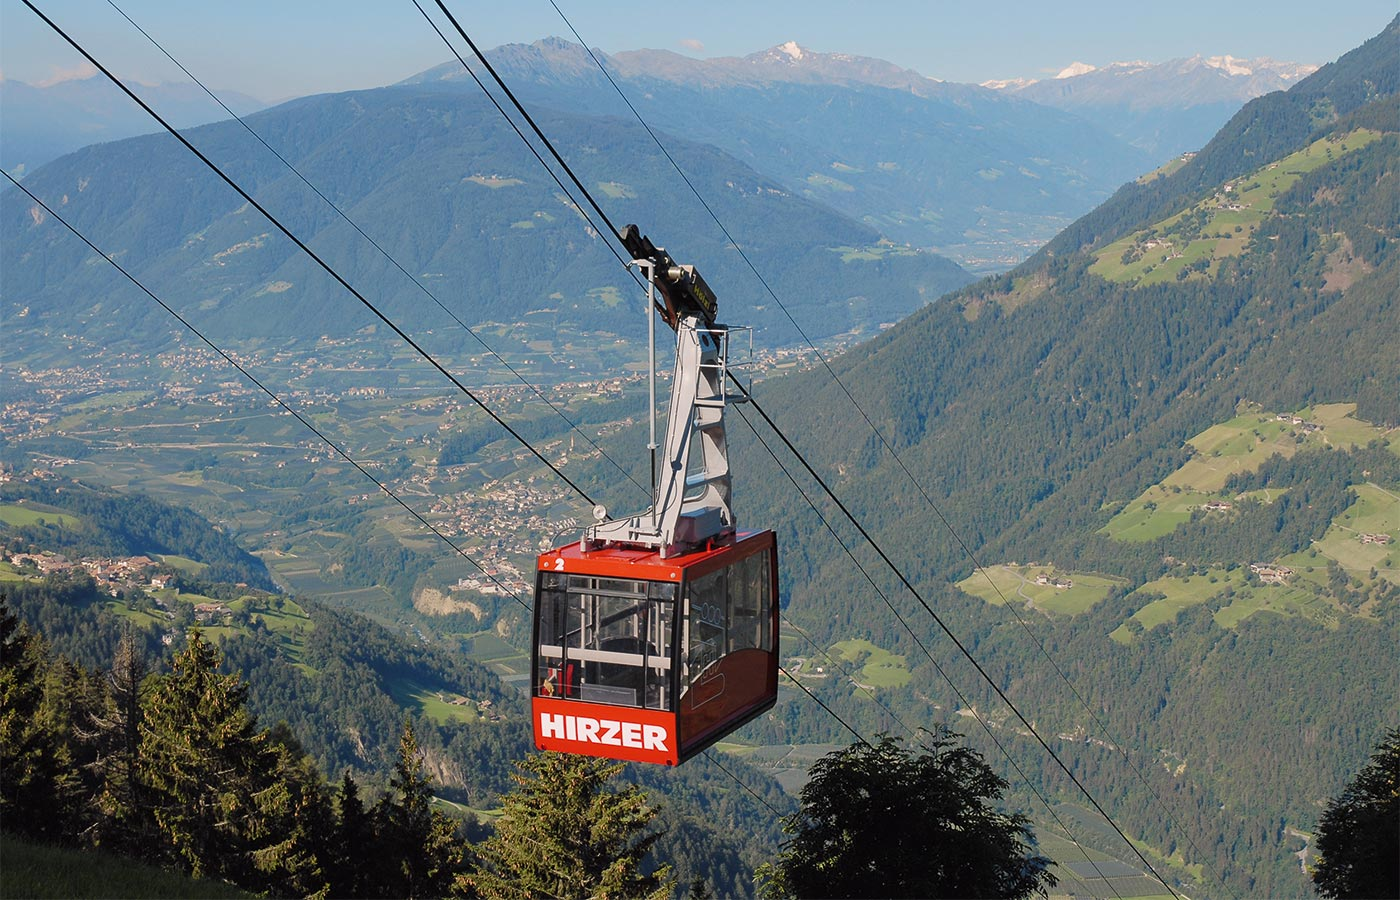 Hirzer cable car at 1980mt altitude